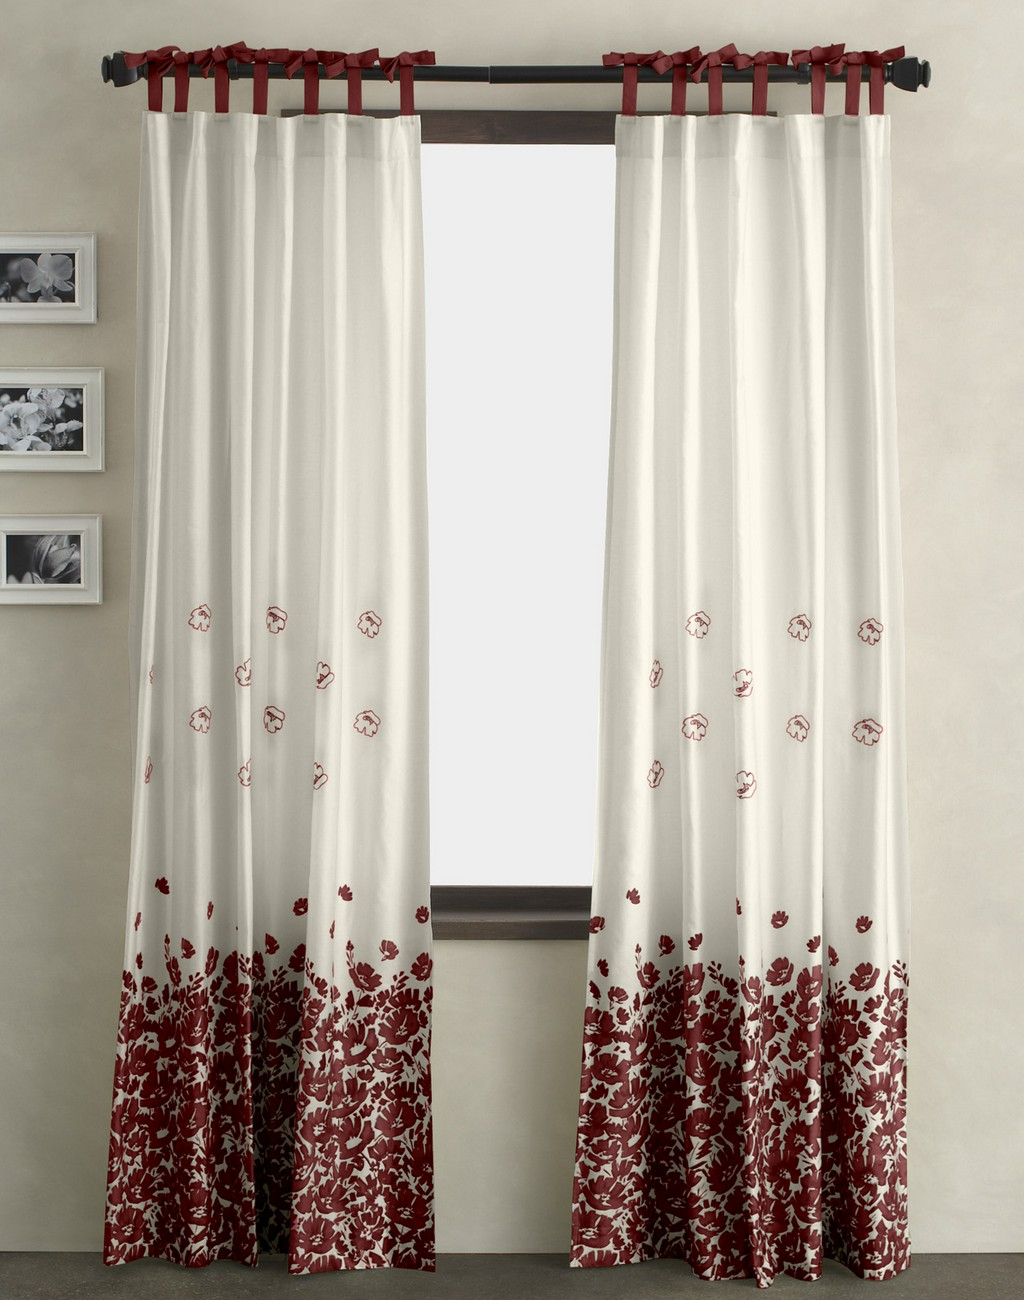 curtain, bathroom curtains, curtains diy window treatments2fswags, silk curtains